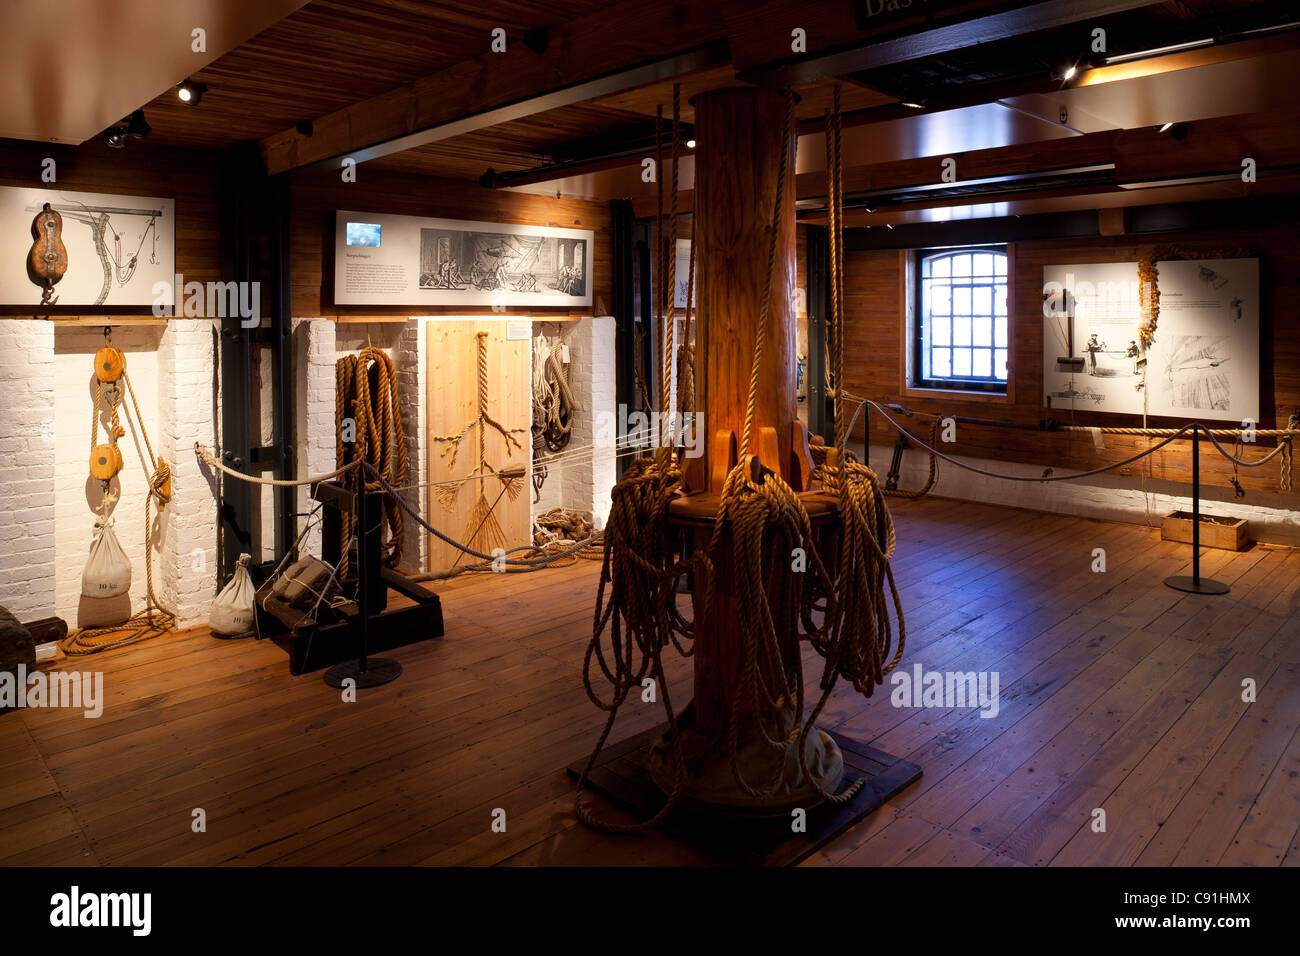 Demonstration of rope making and sailor's knots International Maritime Museum Hamburg Hanseatic city of Hamburg - Stock Image